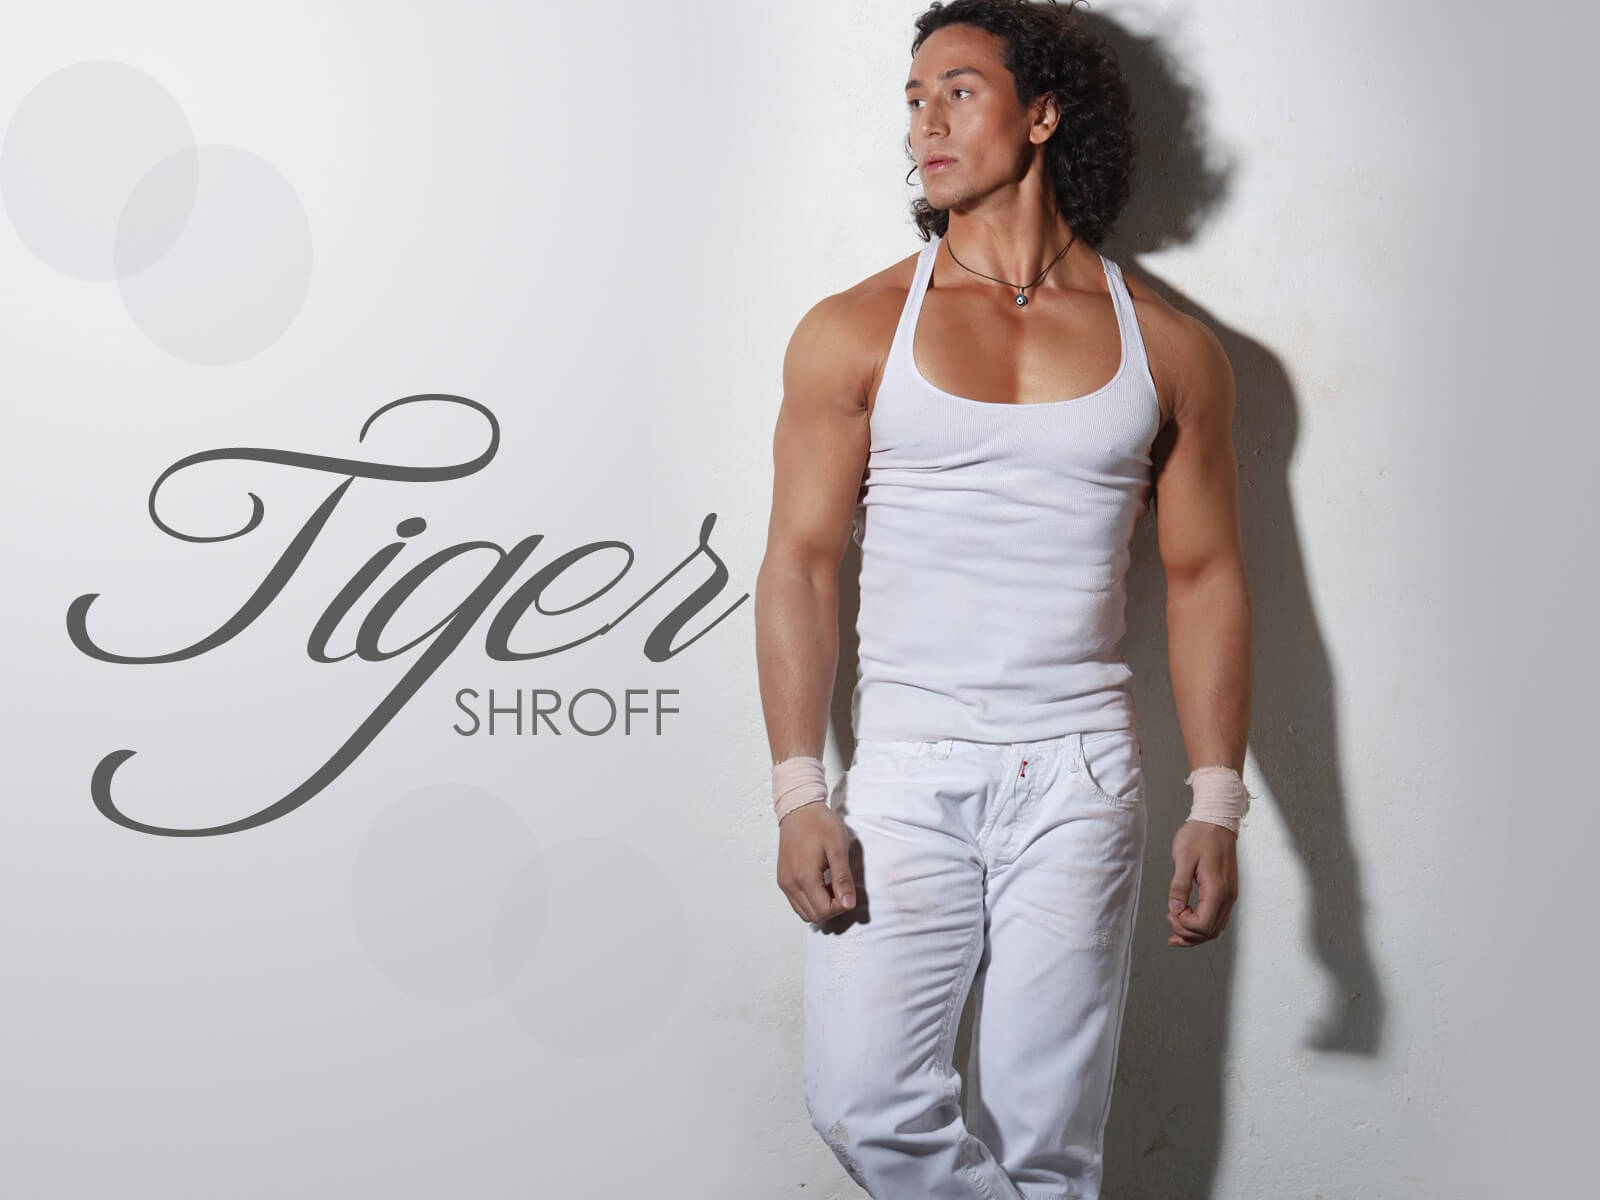 Tiger Shroff Age, Photos(image), Song, Movie, Height, Girlfriend, Sister, Date Of Birth, Net Worth, Biography, Education, Awards, Instagram, Twitter, Facebook, Wiki, Imdb, Youtube (33)